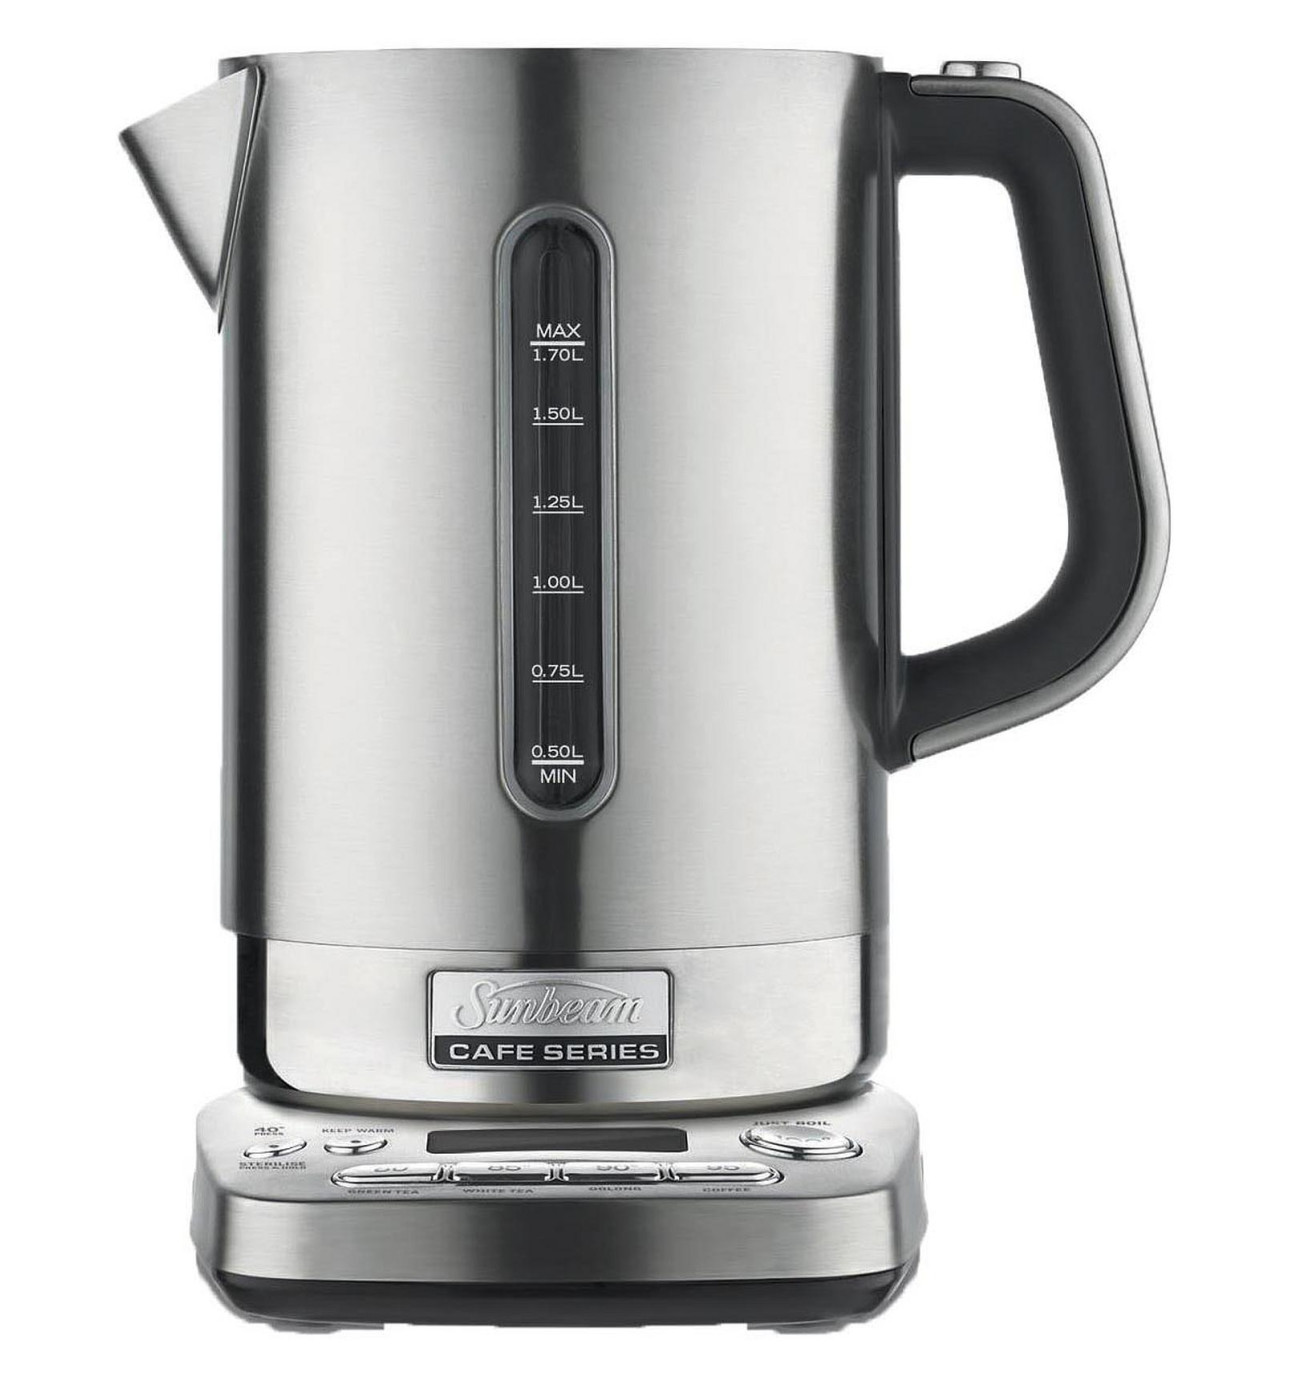 Uncategorized David Jones Kitchen Appliances sunbeam buy small appliances online david jones sunbeam